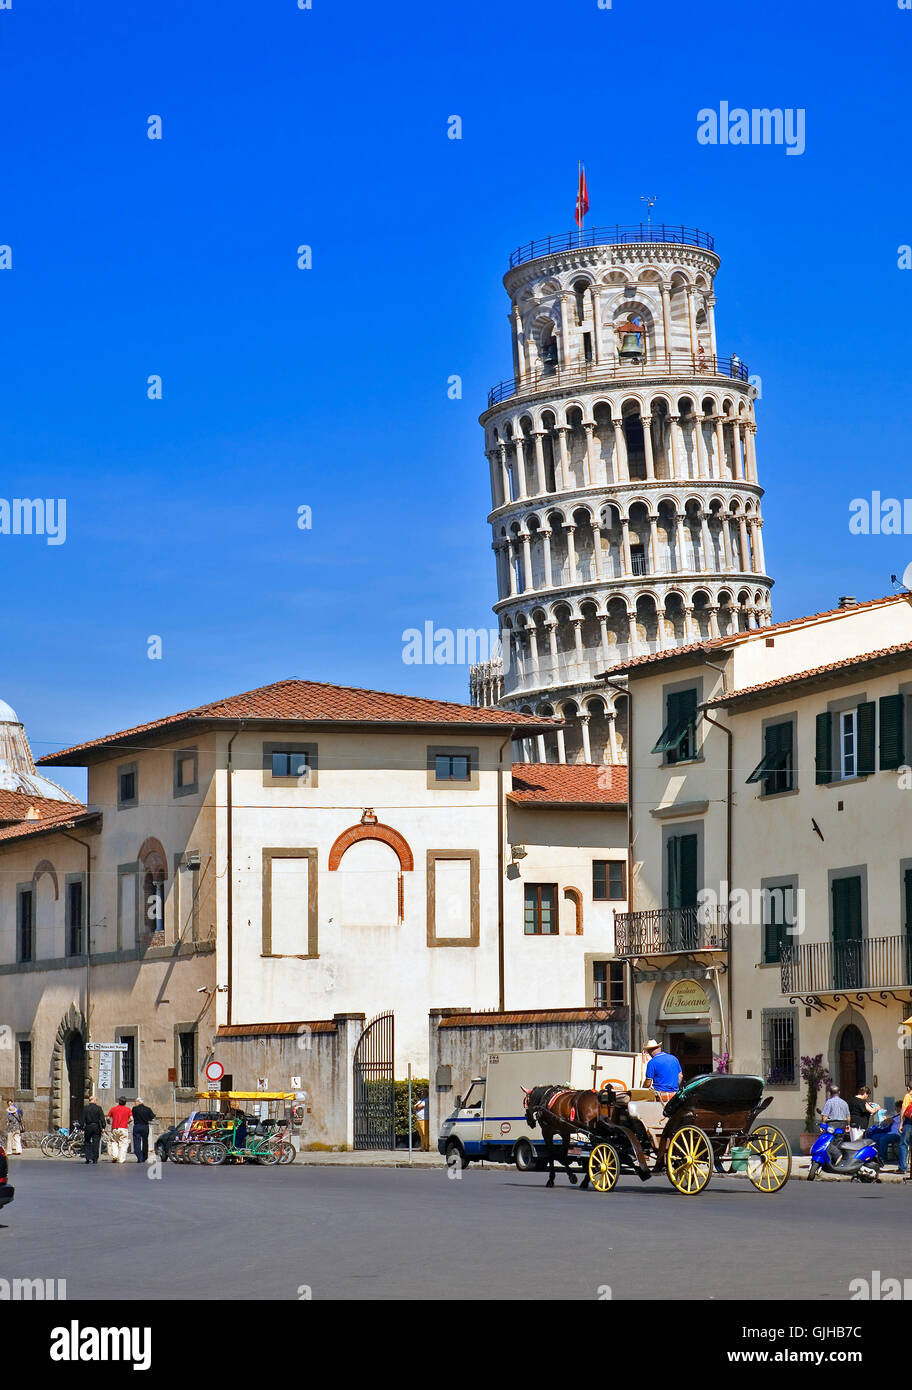 tower old town skew - Stock Image